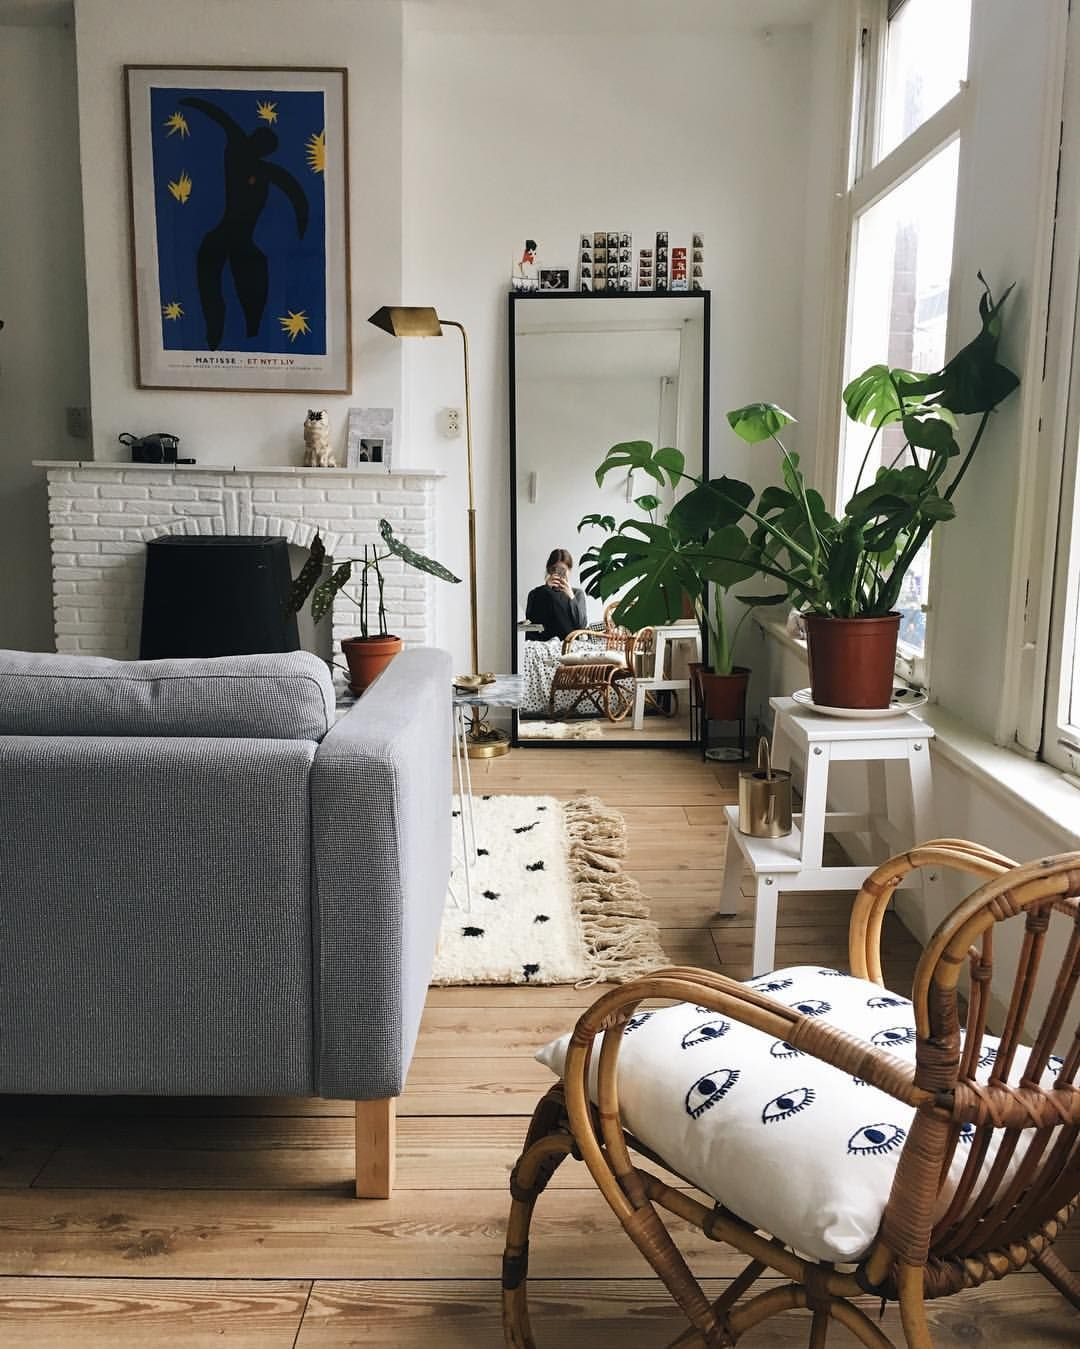 Home // Studio, Tiny Apartment, Bohemian, Matisse